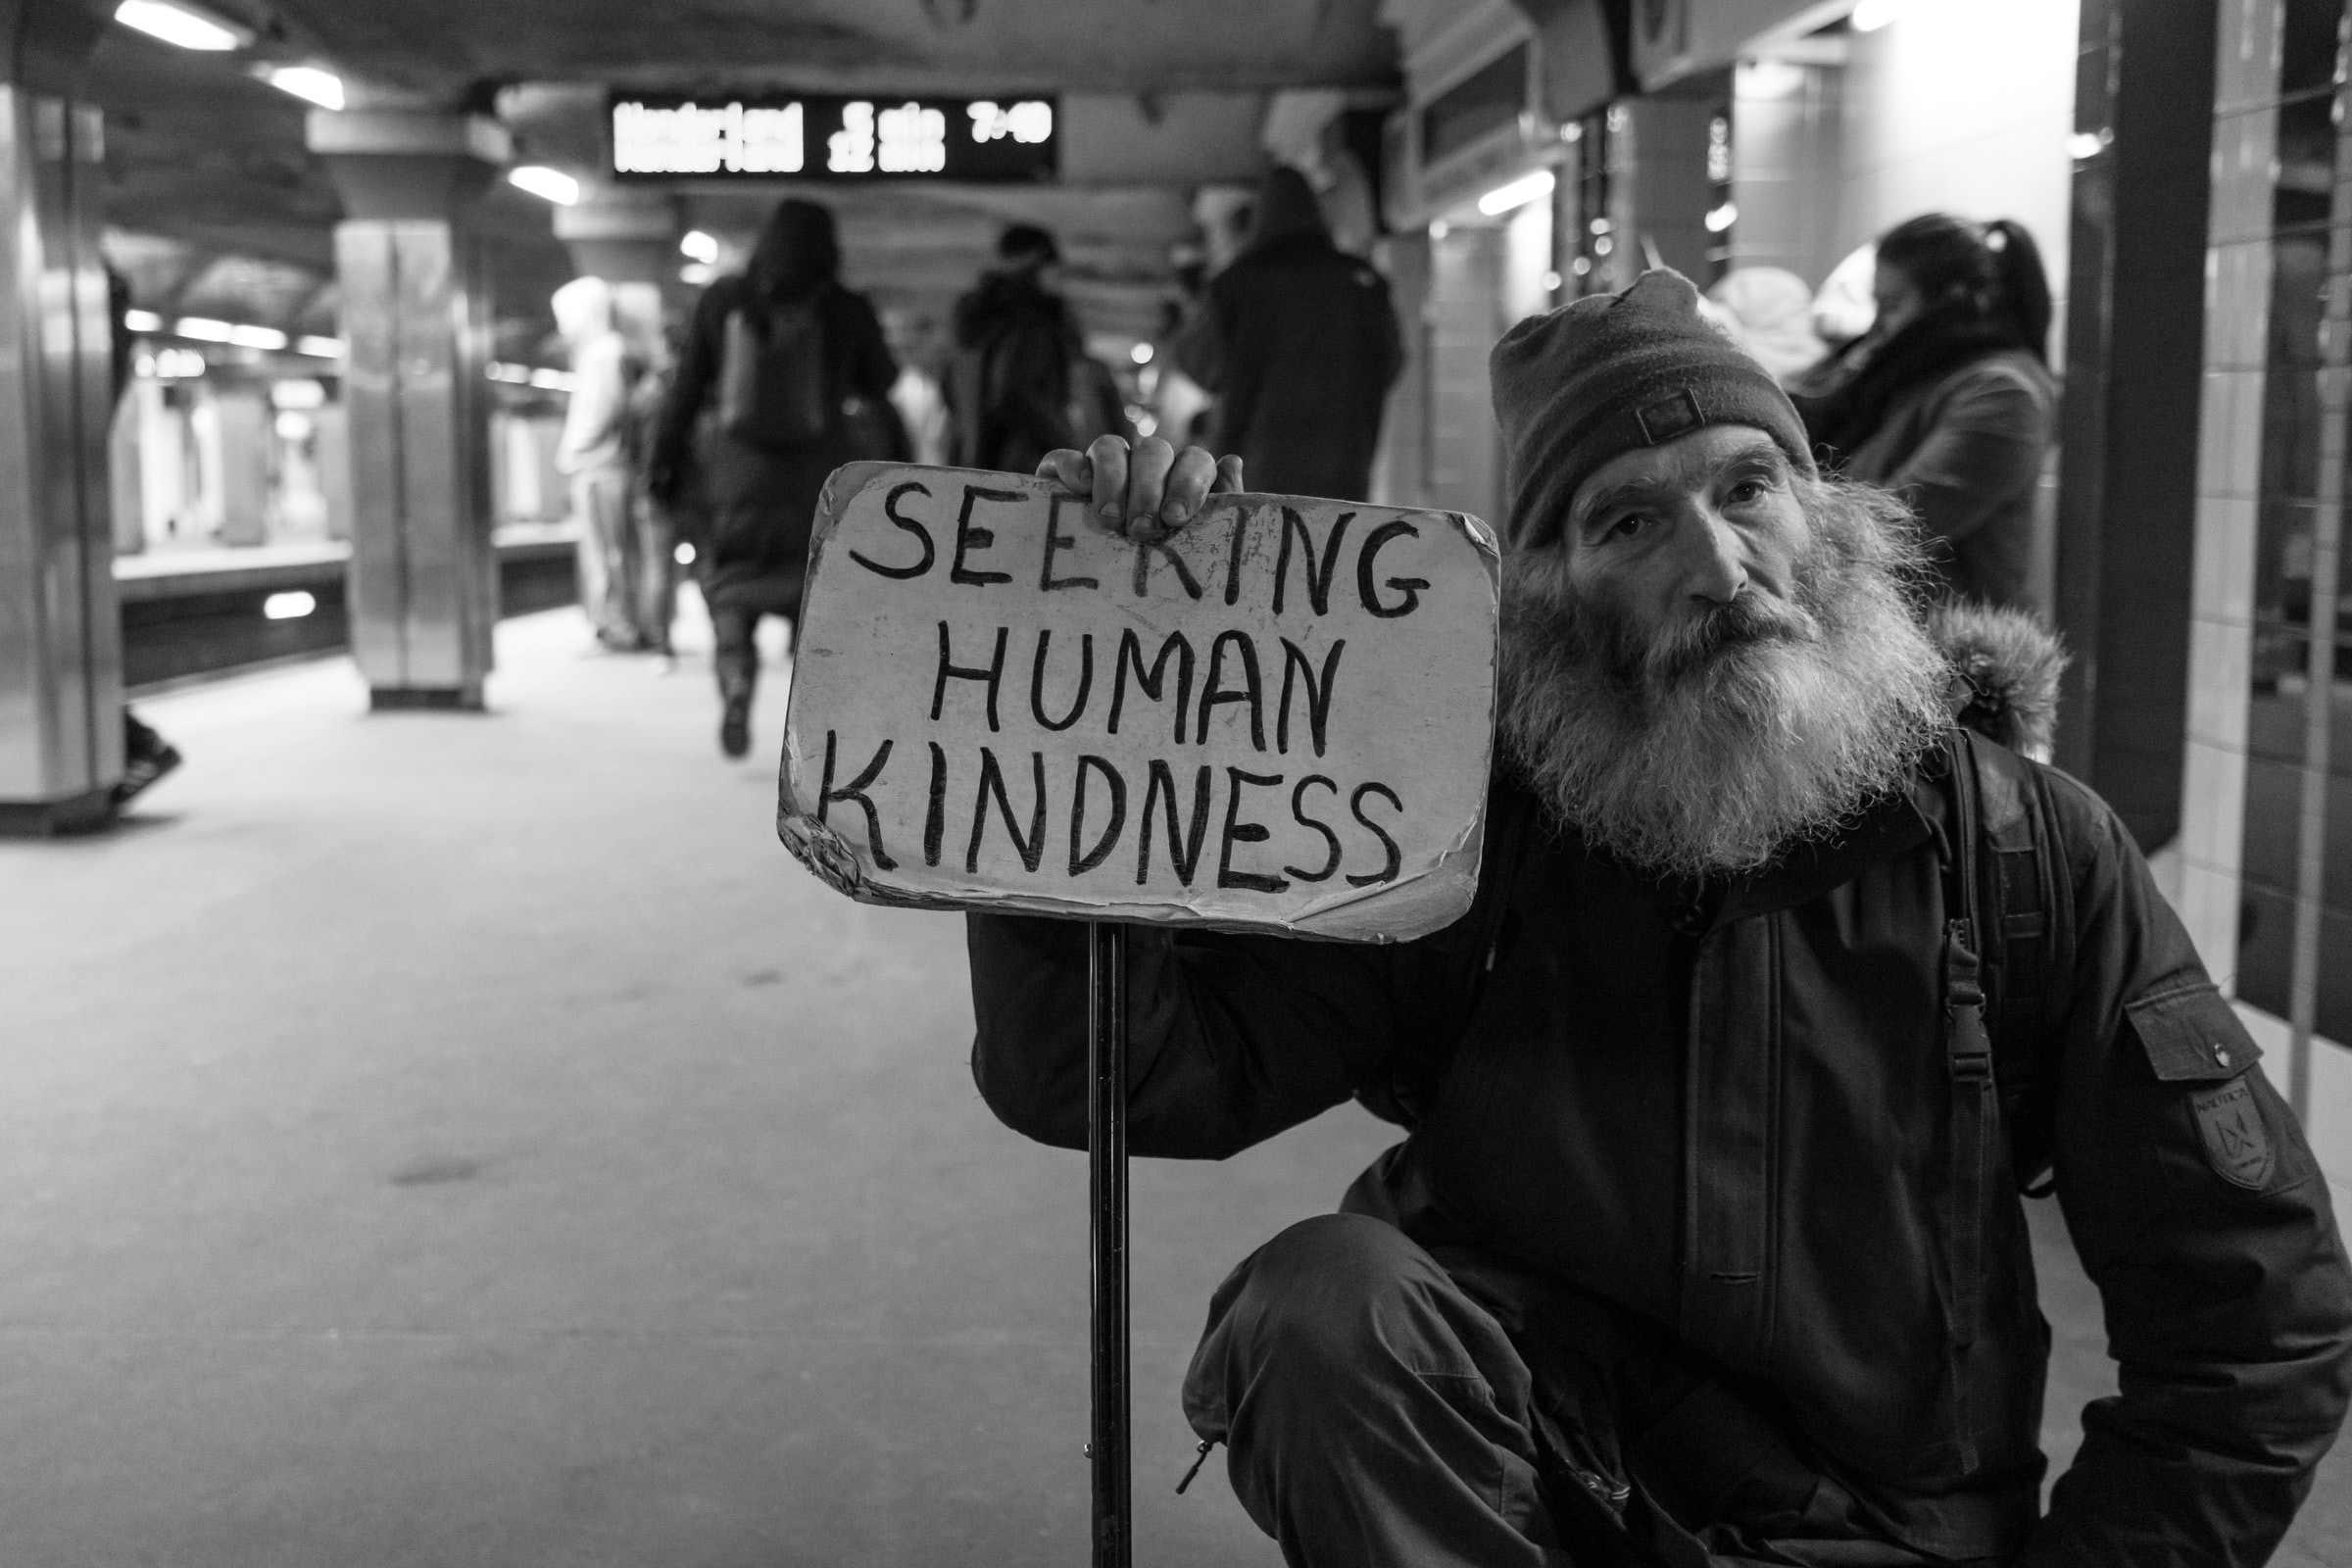 Man holding a card with seeking human kindness text